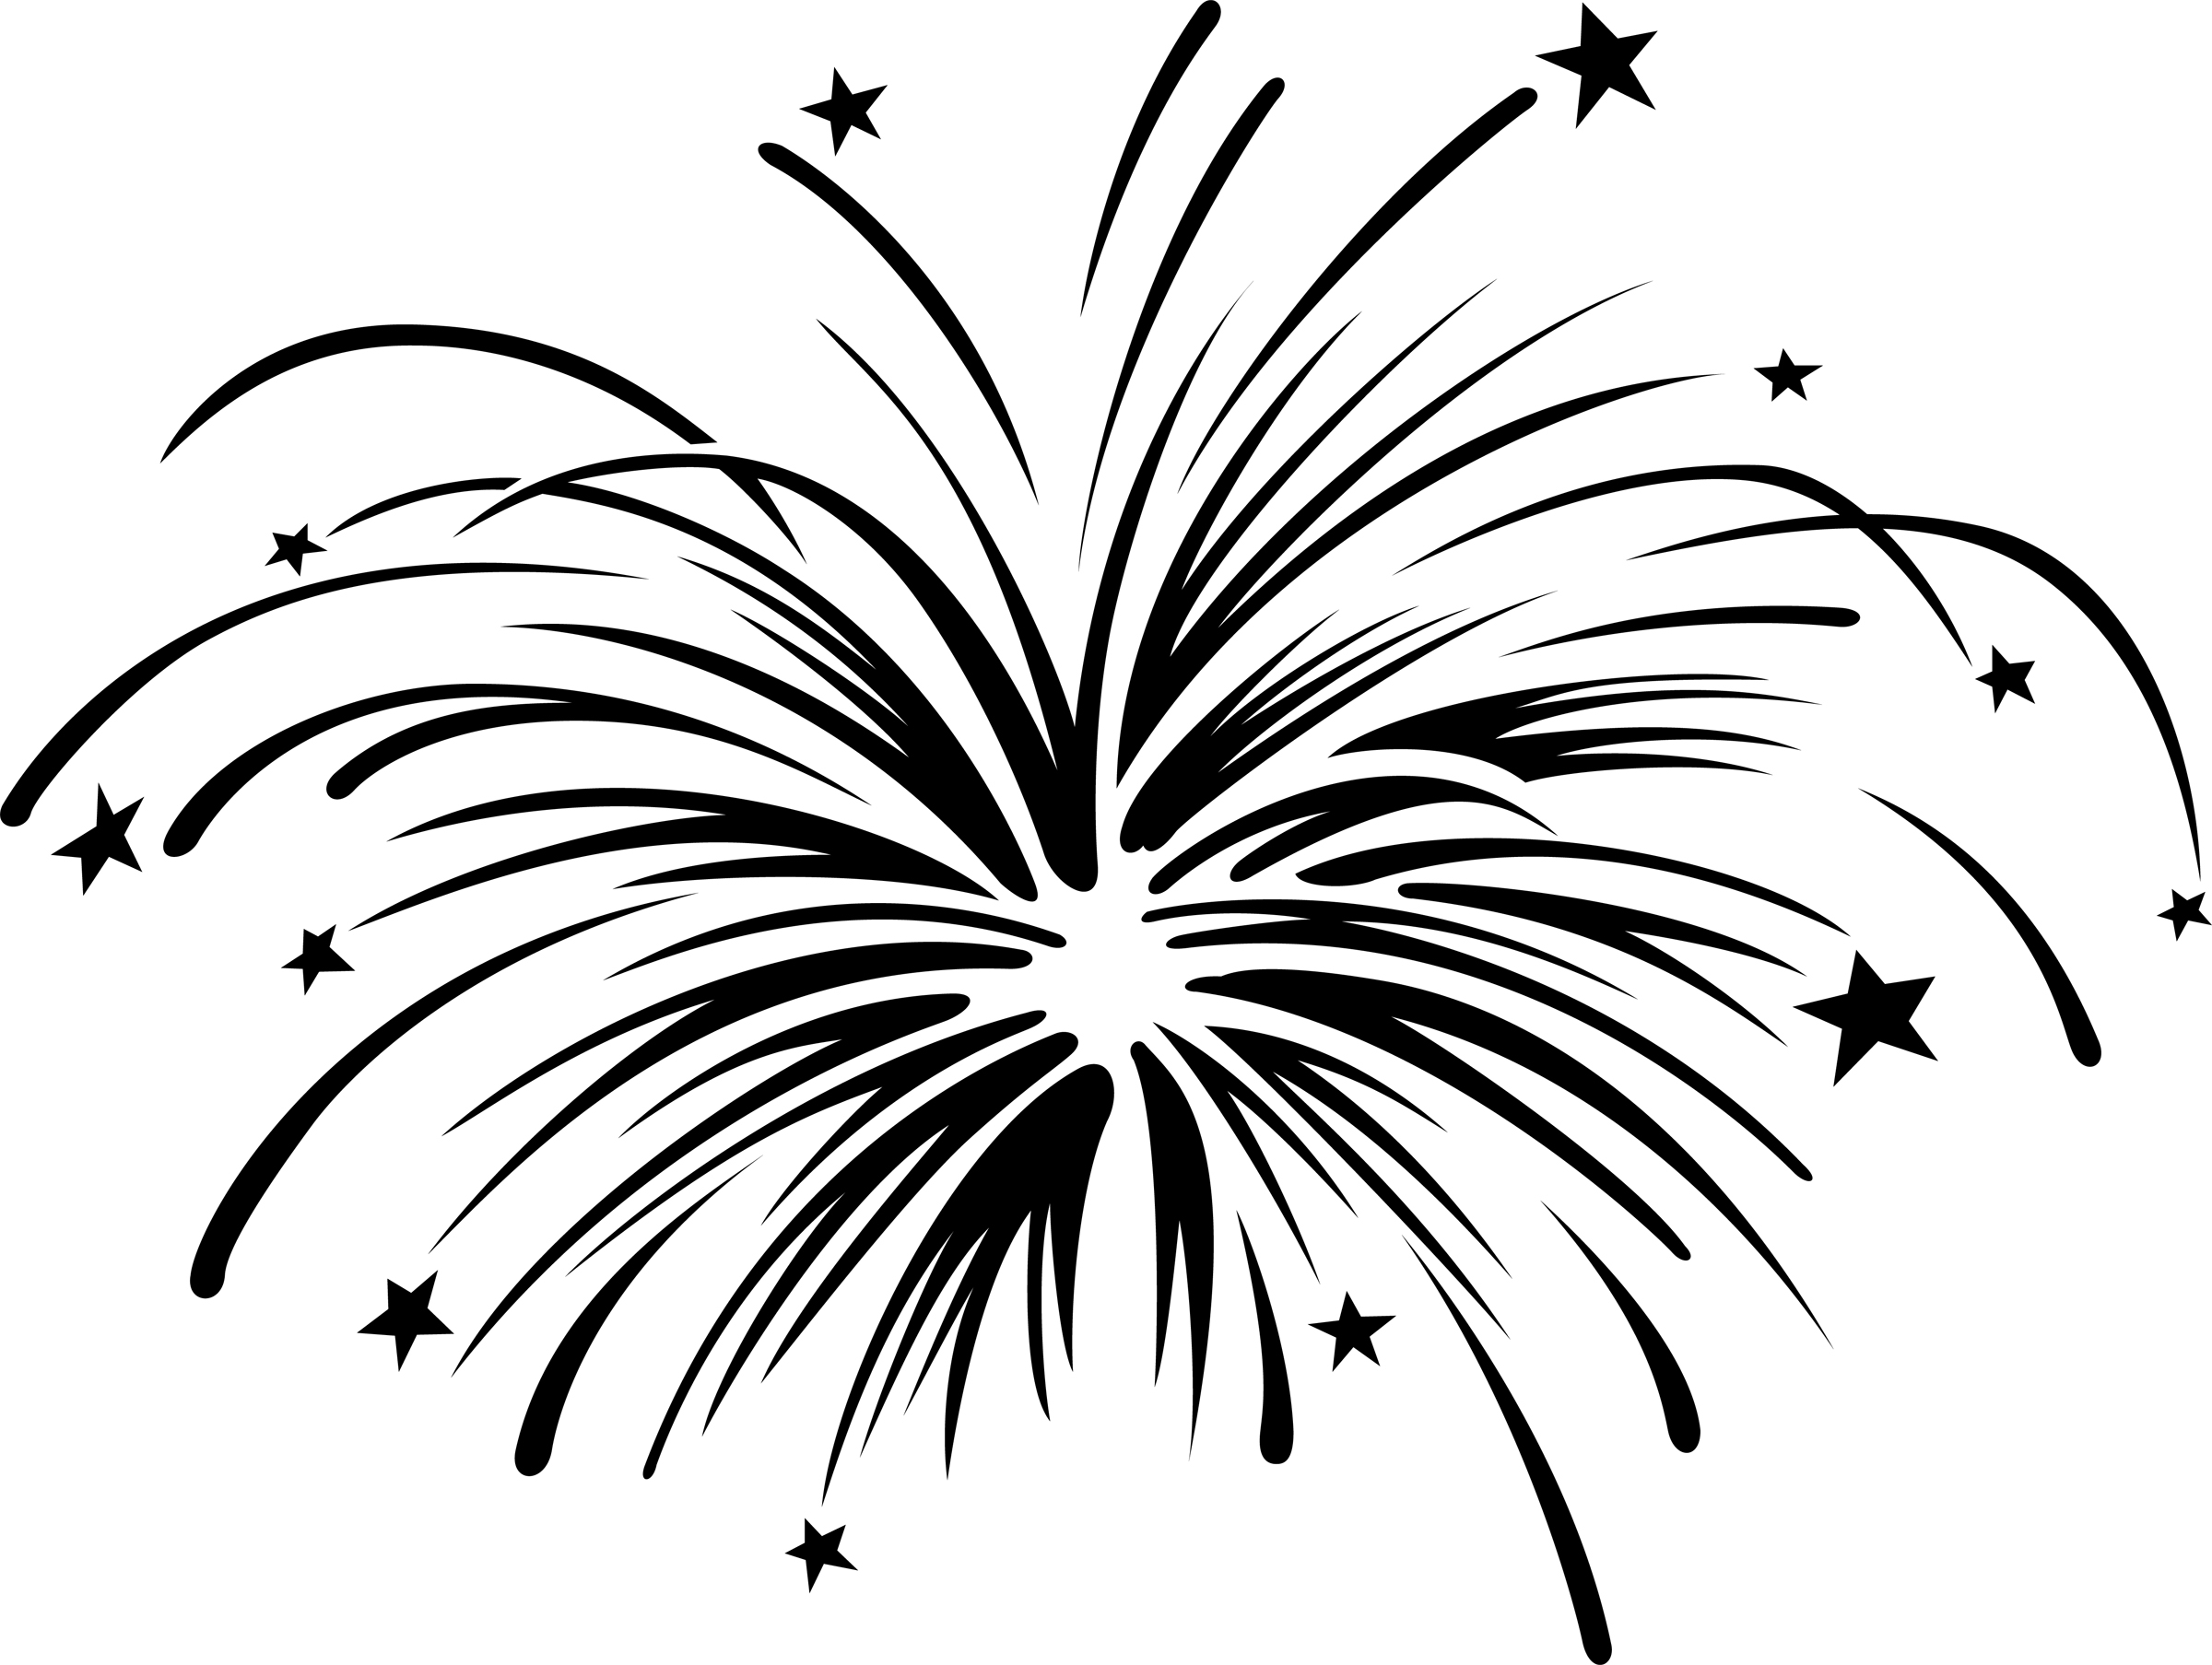 1000  Ideas About Fireworks Clipart On P-1000  ideas about Fireworks Clipart on Pinterest | 4th of july clipart, Summer clipart and Independence day-3